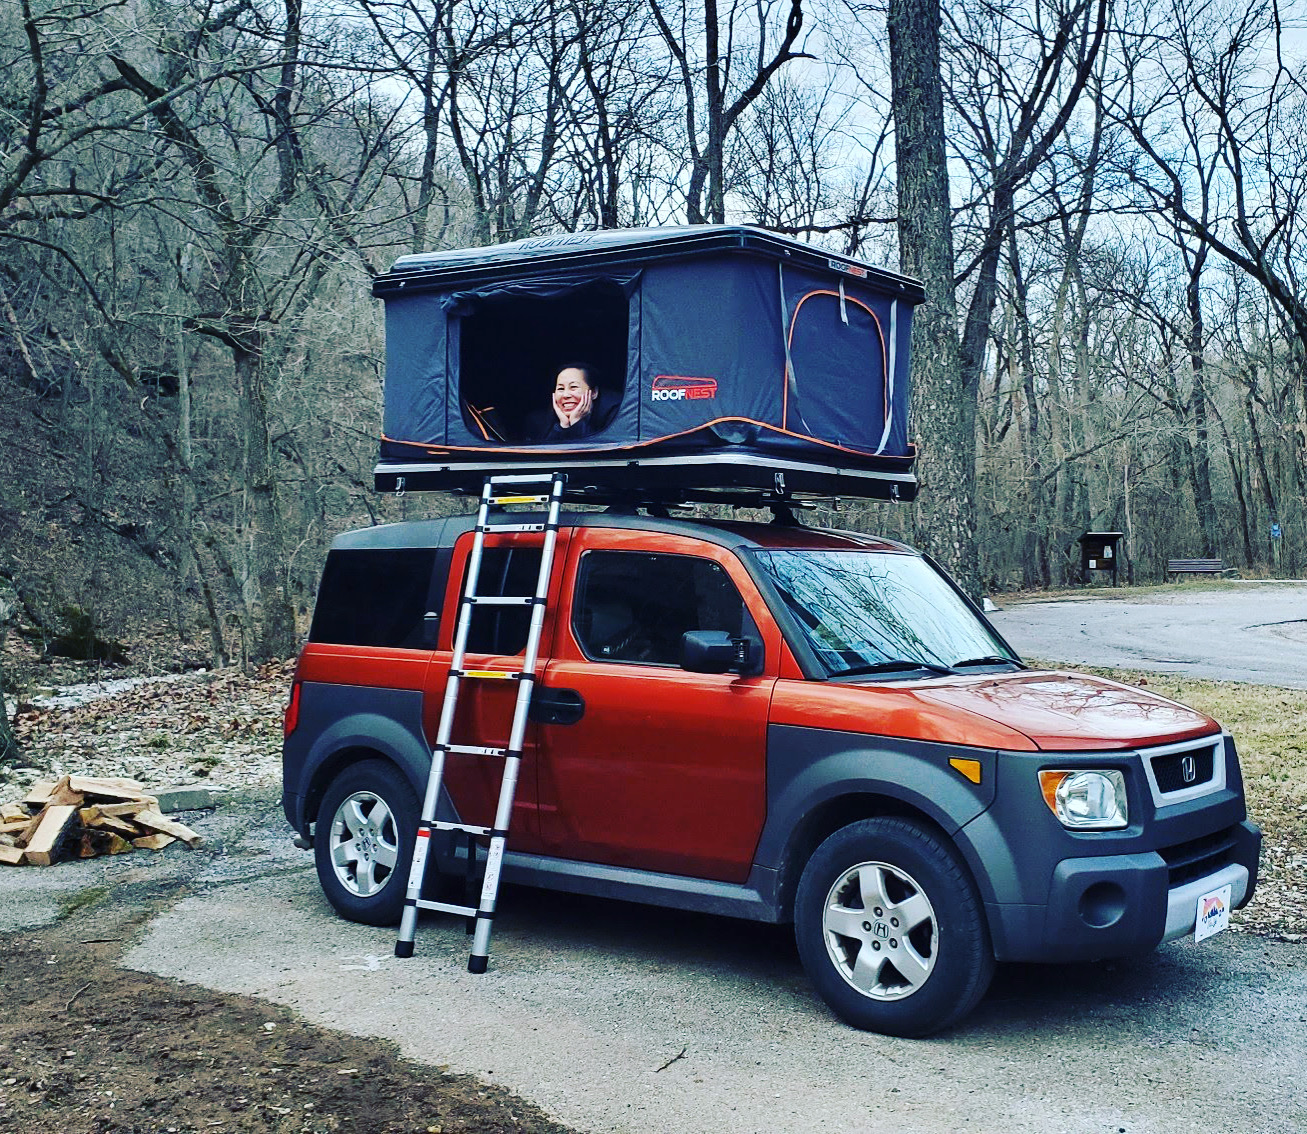 New Rooftop tent